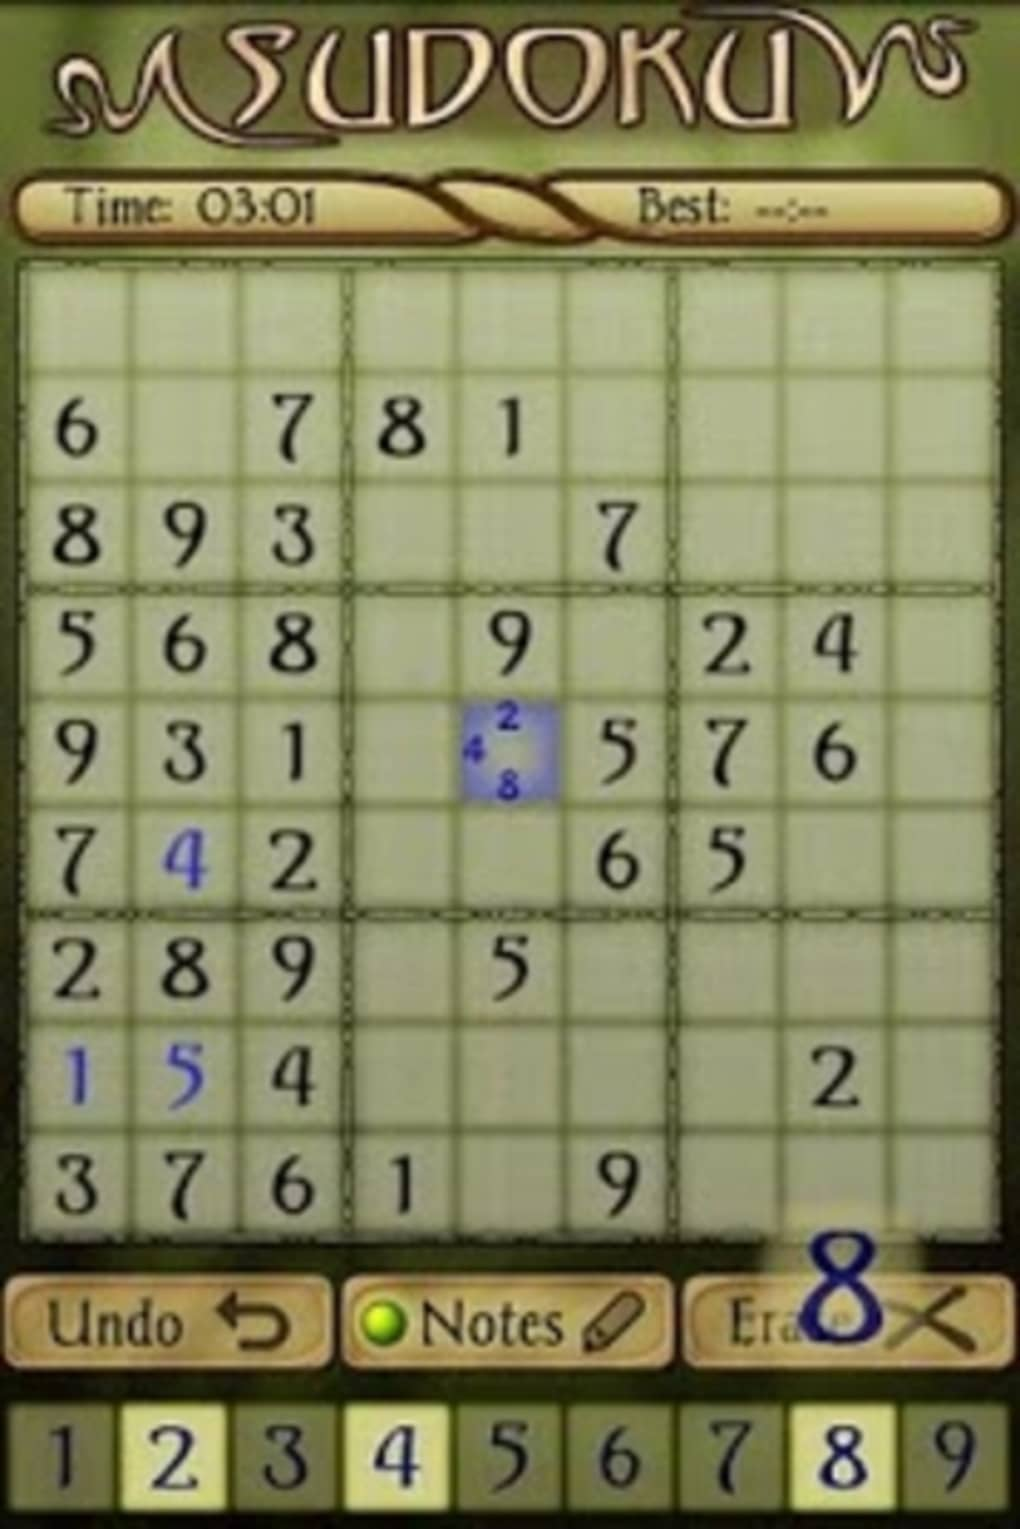 Sudoku Free for Android - Download